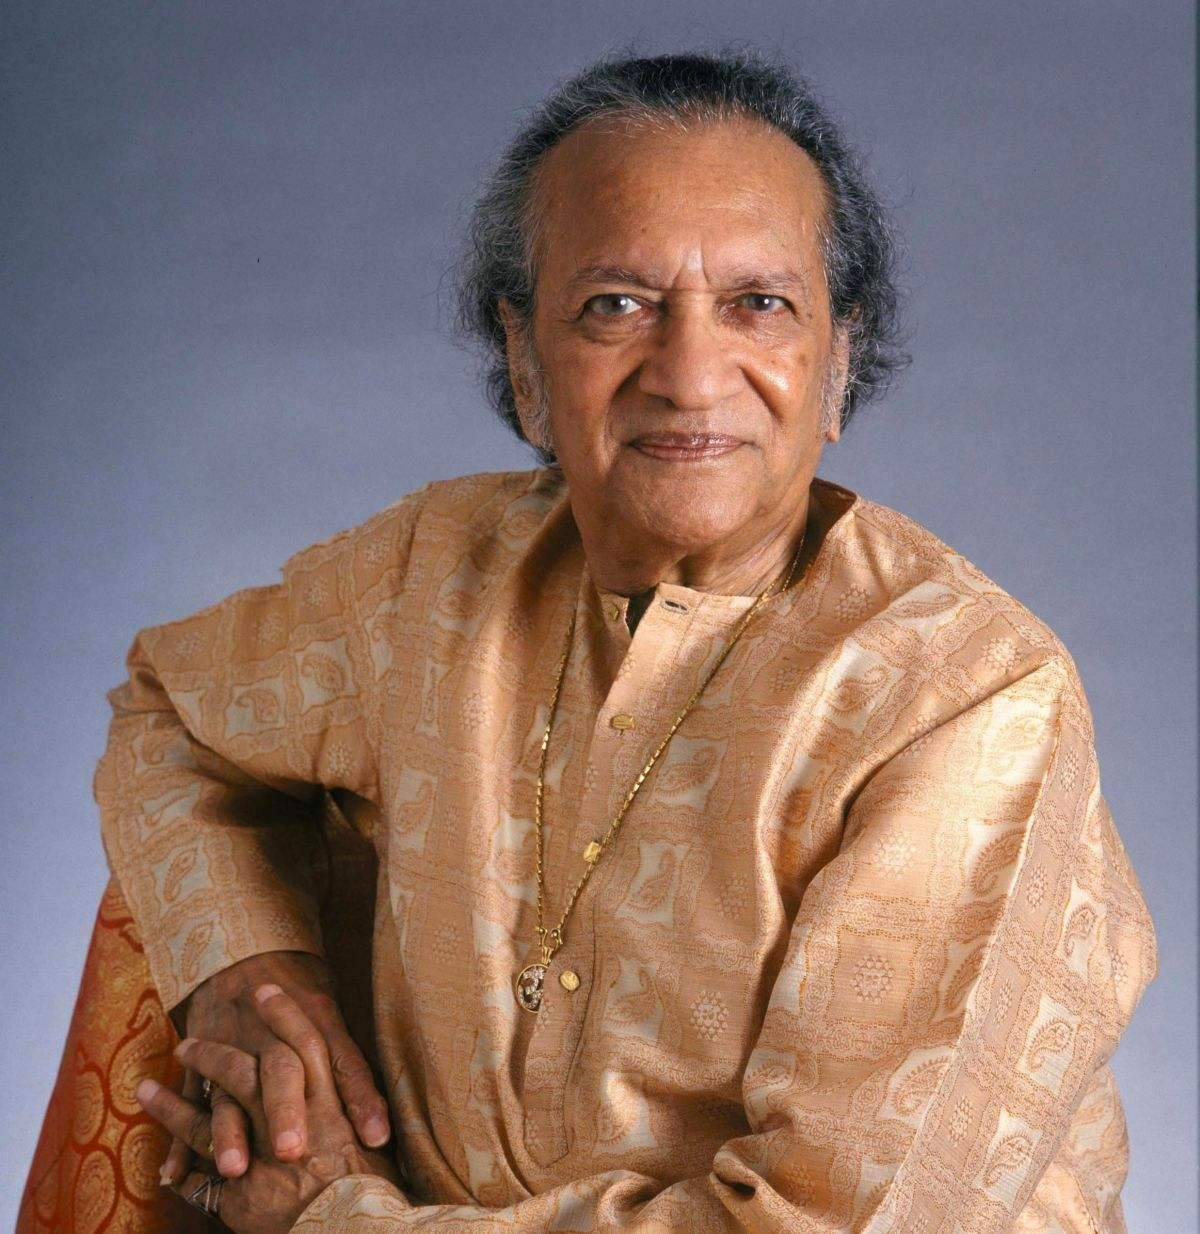 Rest in Love, Ravi Shankar…